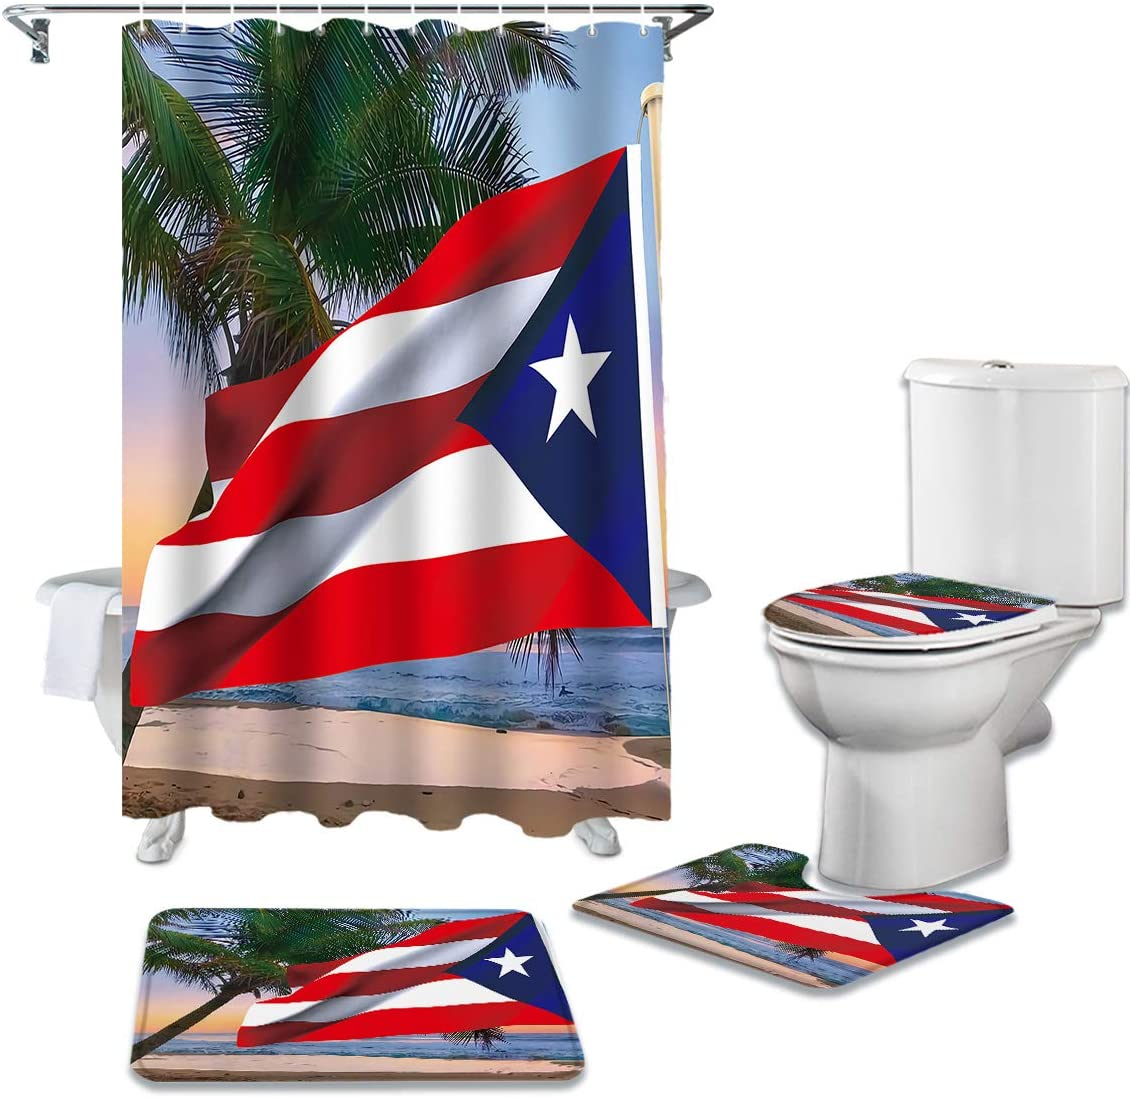 4 Piece Shower Curtain Sets with Non-Slip Rugs, Coastal Ocean Beach Palm Tree Bathroom Curtains Waterproof, Puerto Rico Flag Decor Doormat, Toilet Lid Cover and Bath Mat